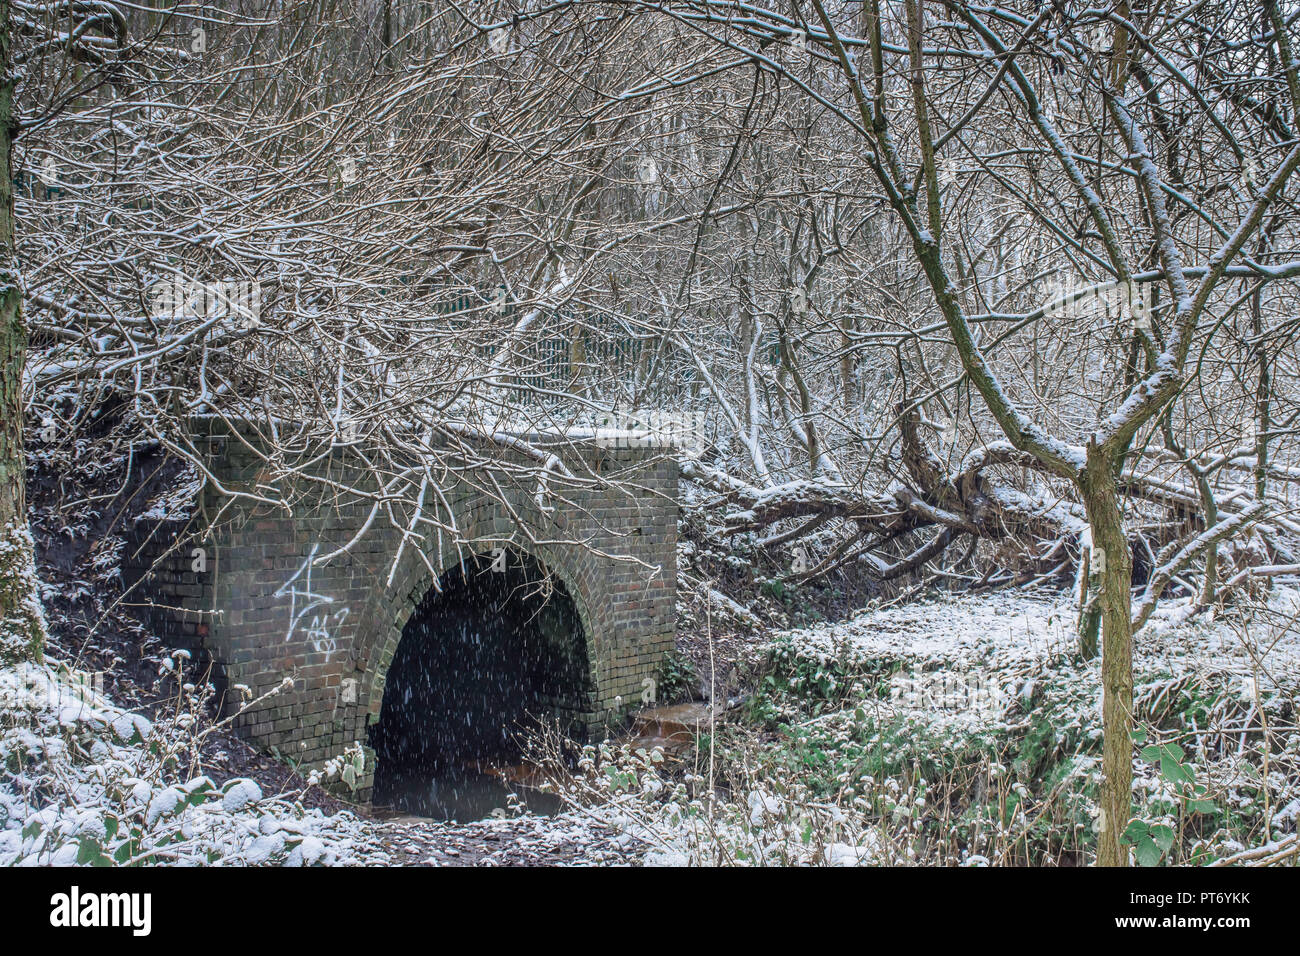 Bridge over stream in woodland covered with snow.Winter wonderland landscape.Nature uk.British forest on snowy winter day.Snowfall in forest. - Stock Image